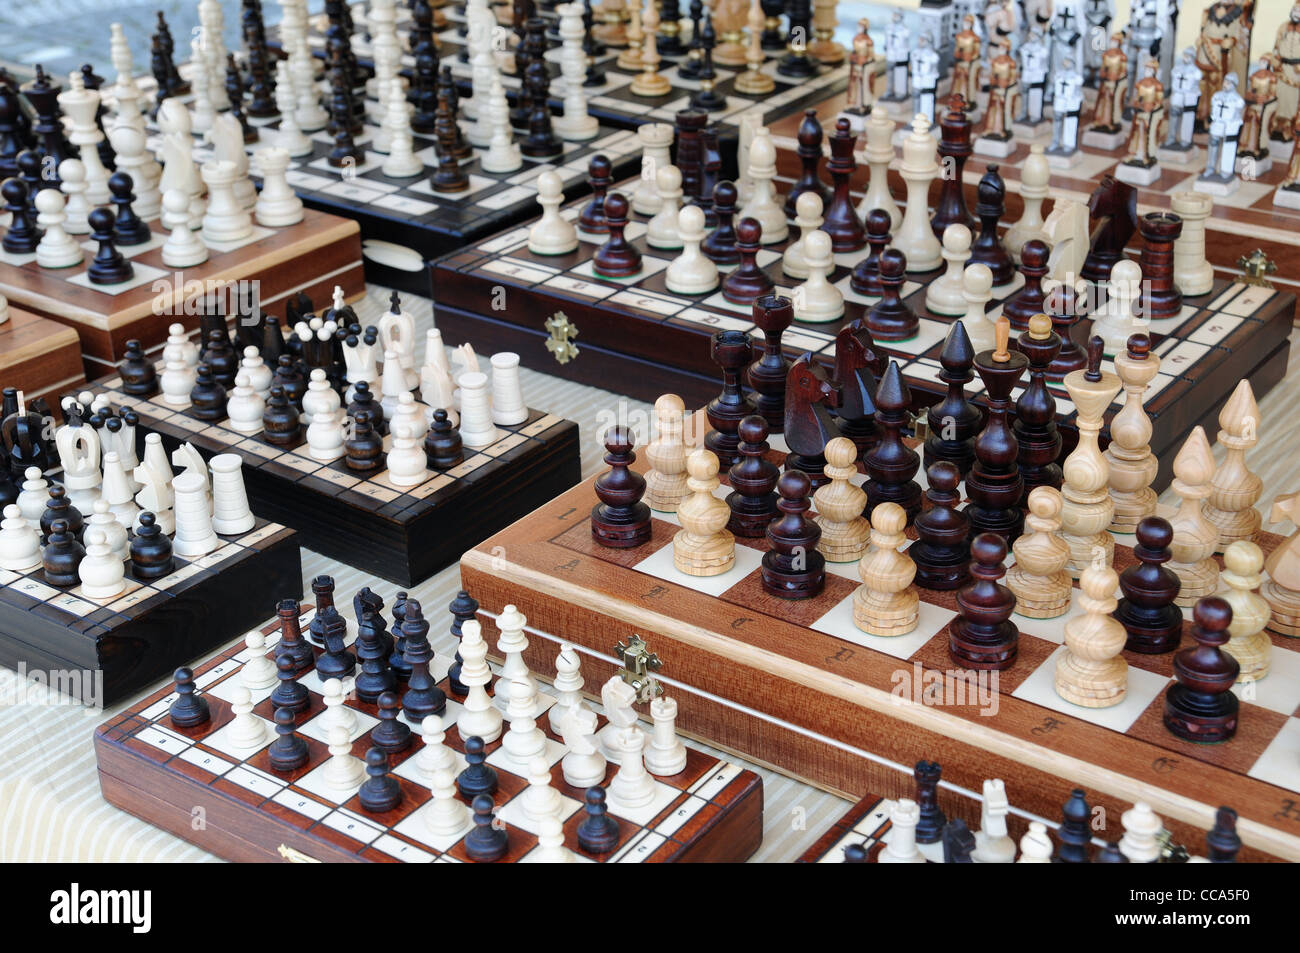 several chessboards for sale - Stock Image